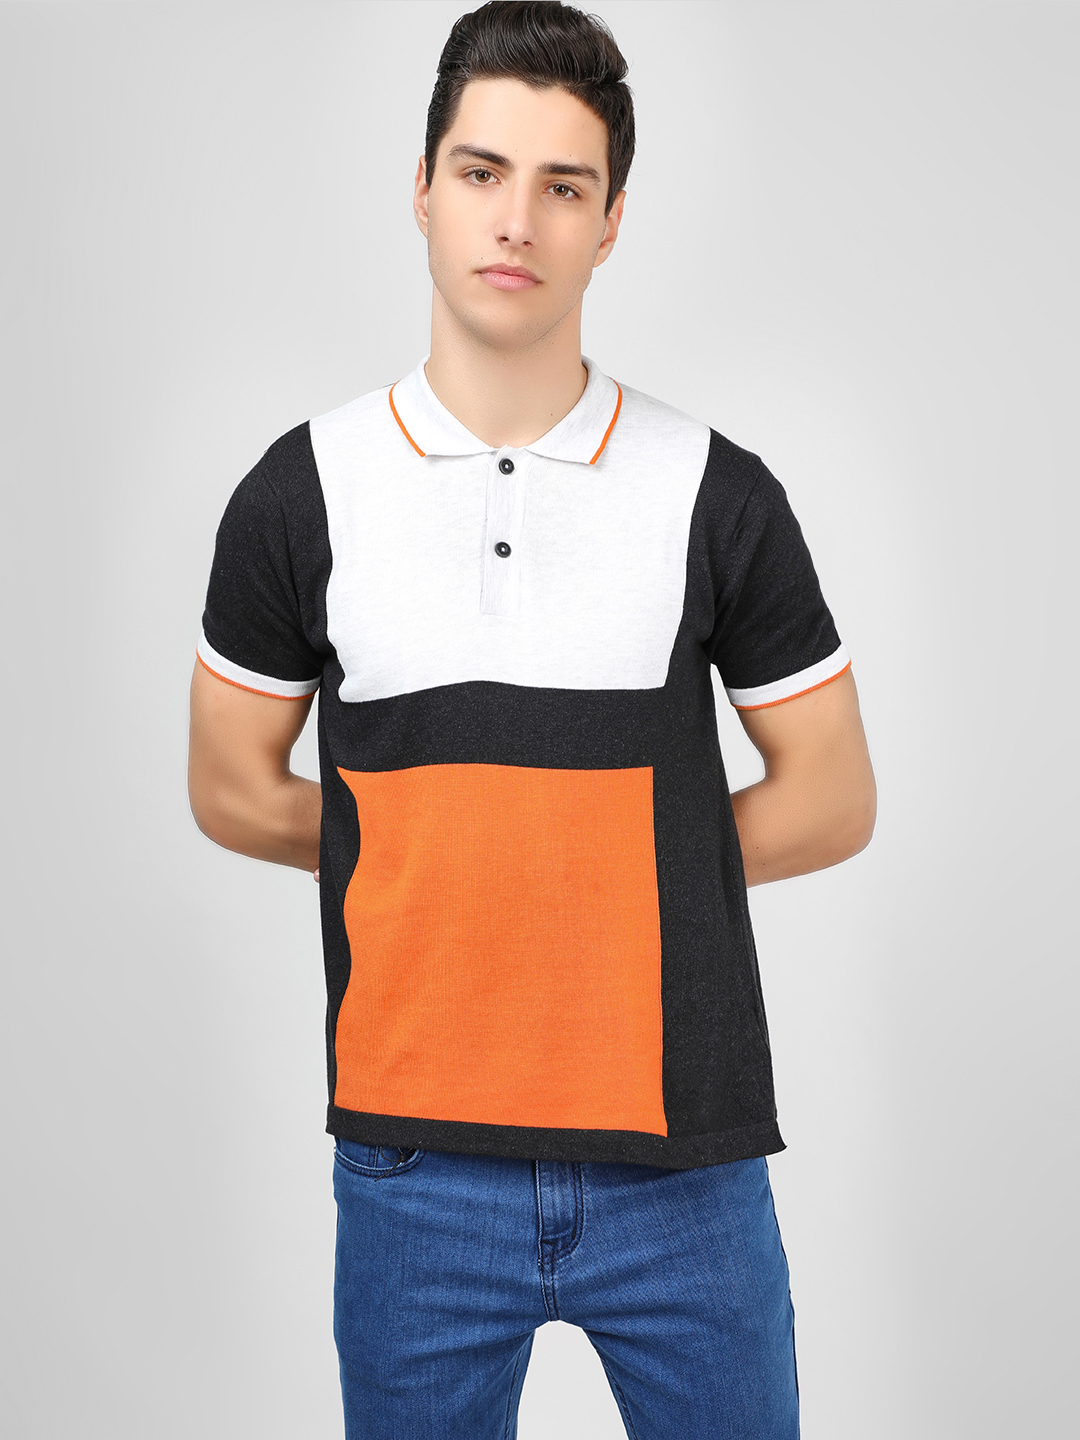 SCULLERS Multi Colour Block Knitted Polo T-Shirt 1